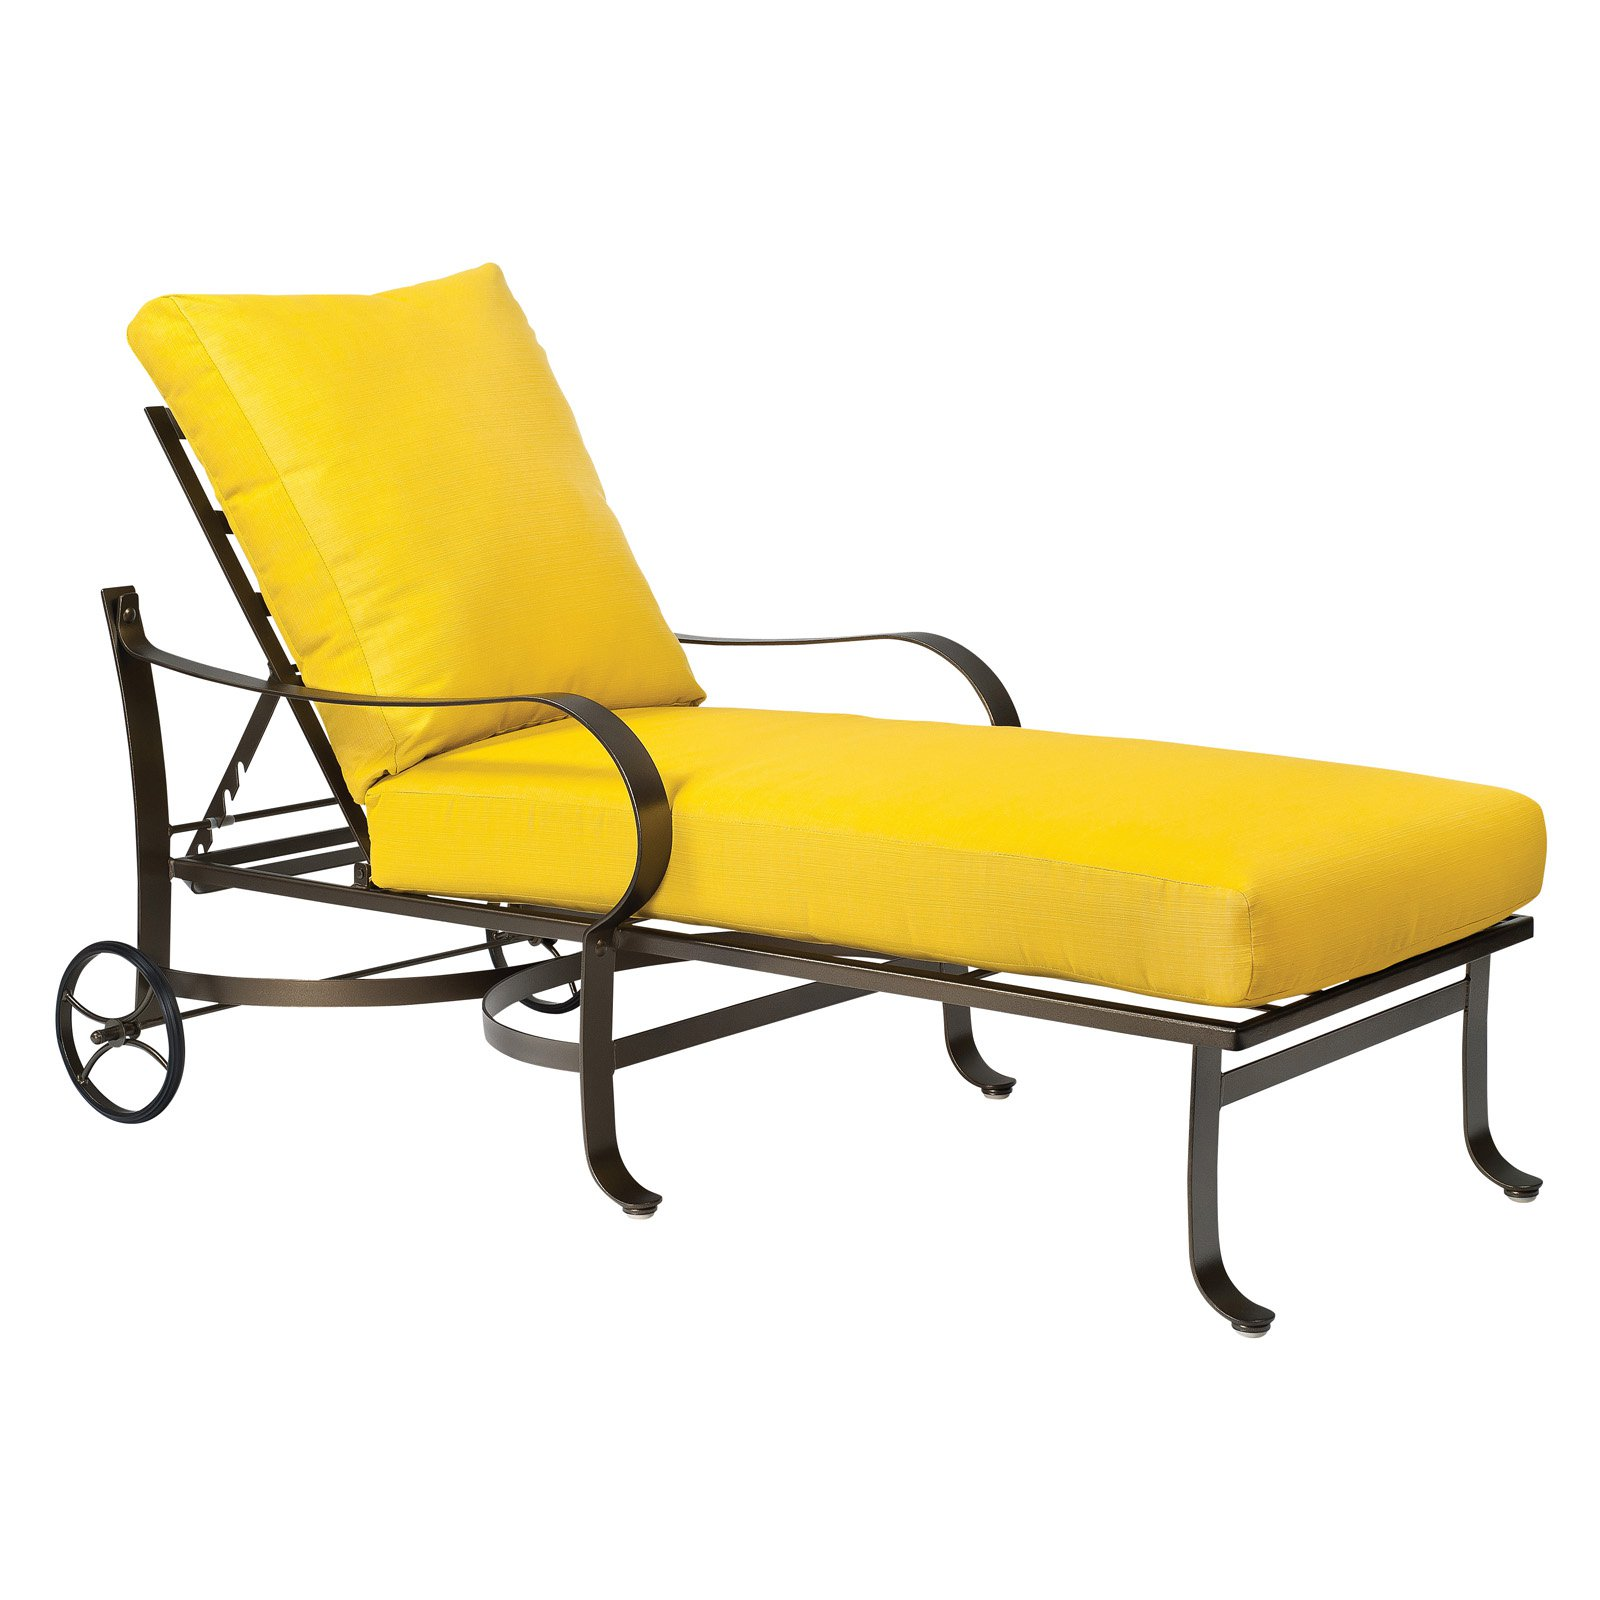 Yellow Chaise Lounge Cushions